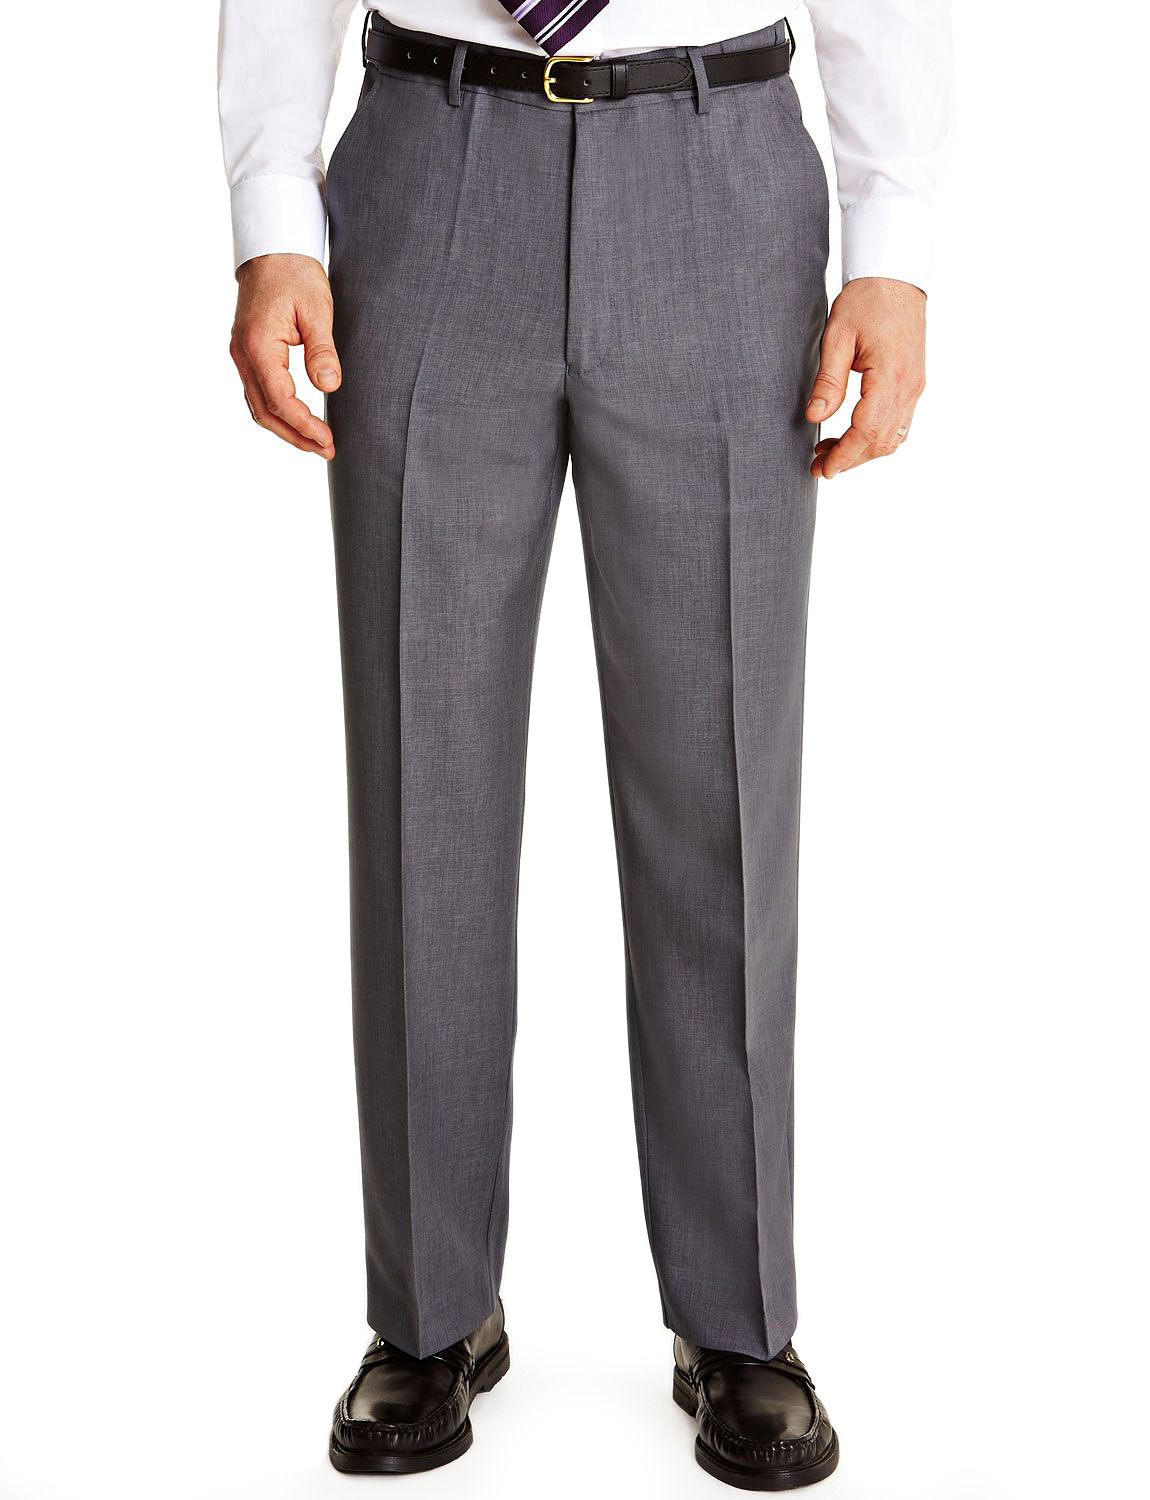 Mens-Farah-Flex-Trouser-Pants-With-Self-Adjusting-Waistband thumbnail 4